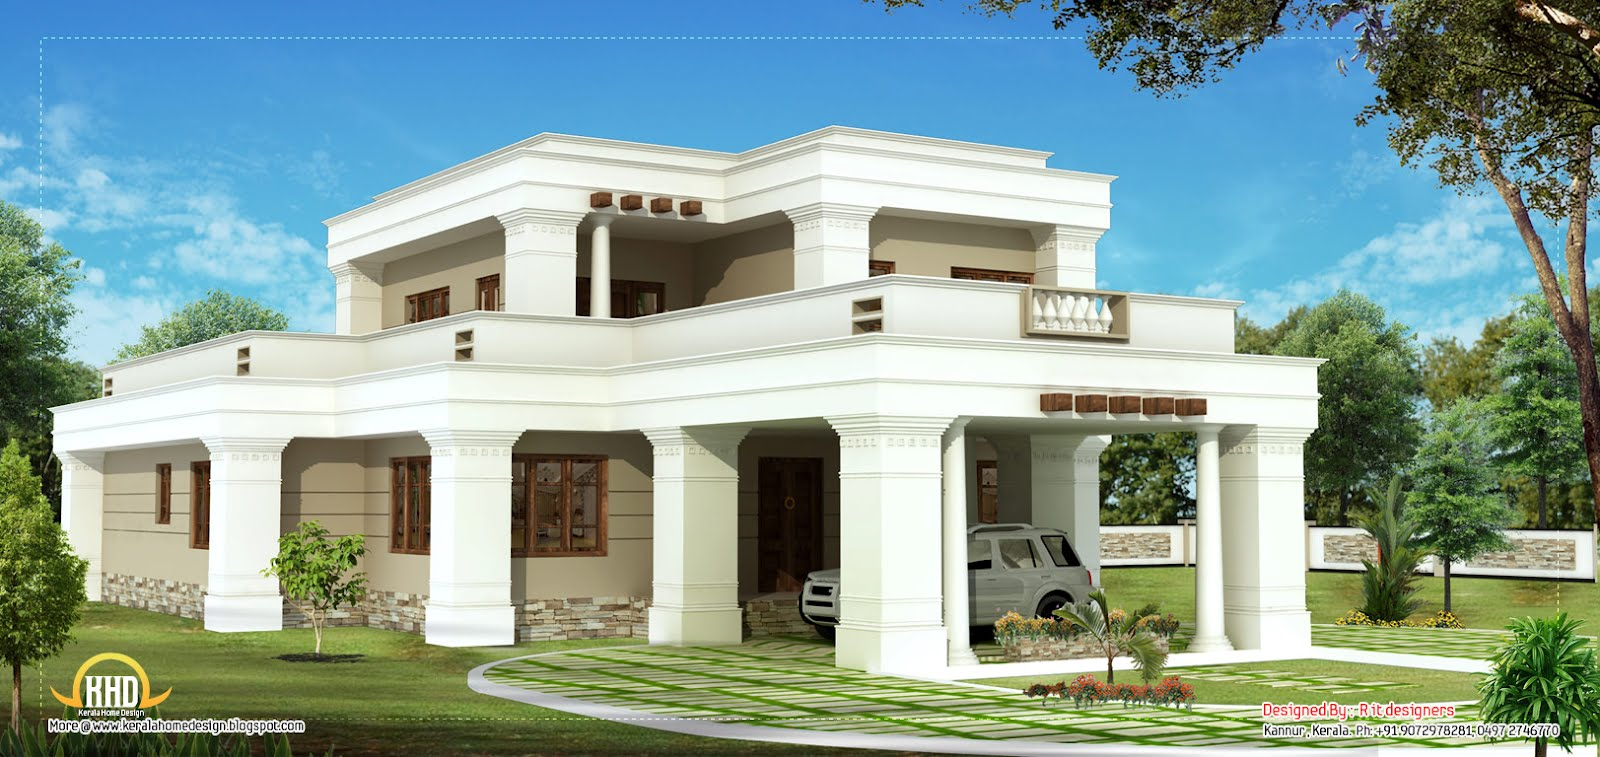 Top Double Story House Designs 1600 x 757 · 222 kB · jpeg